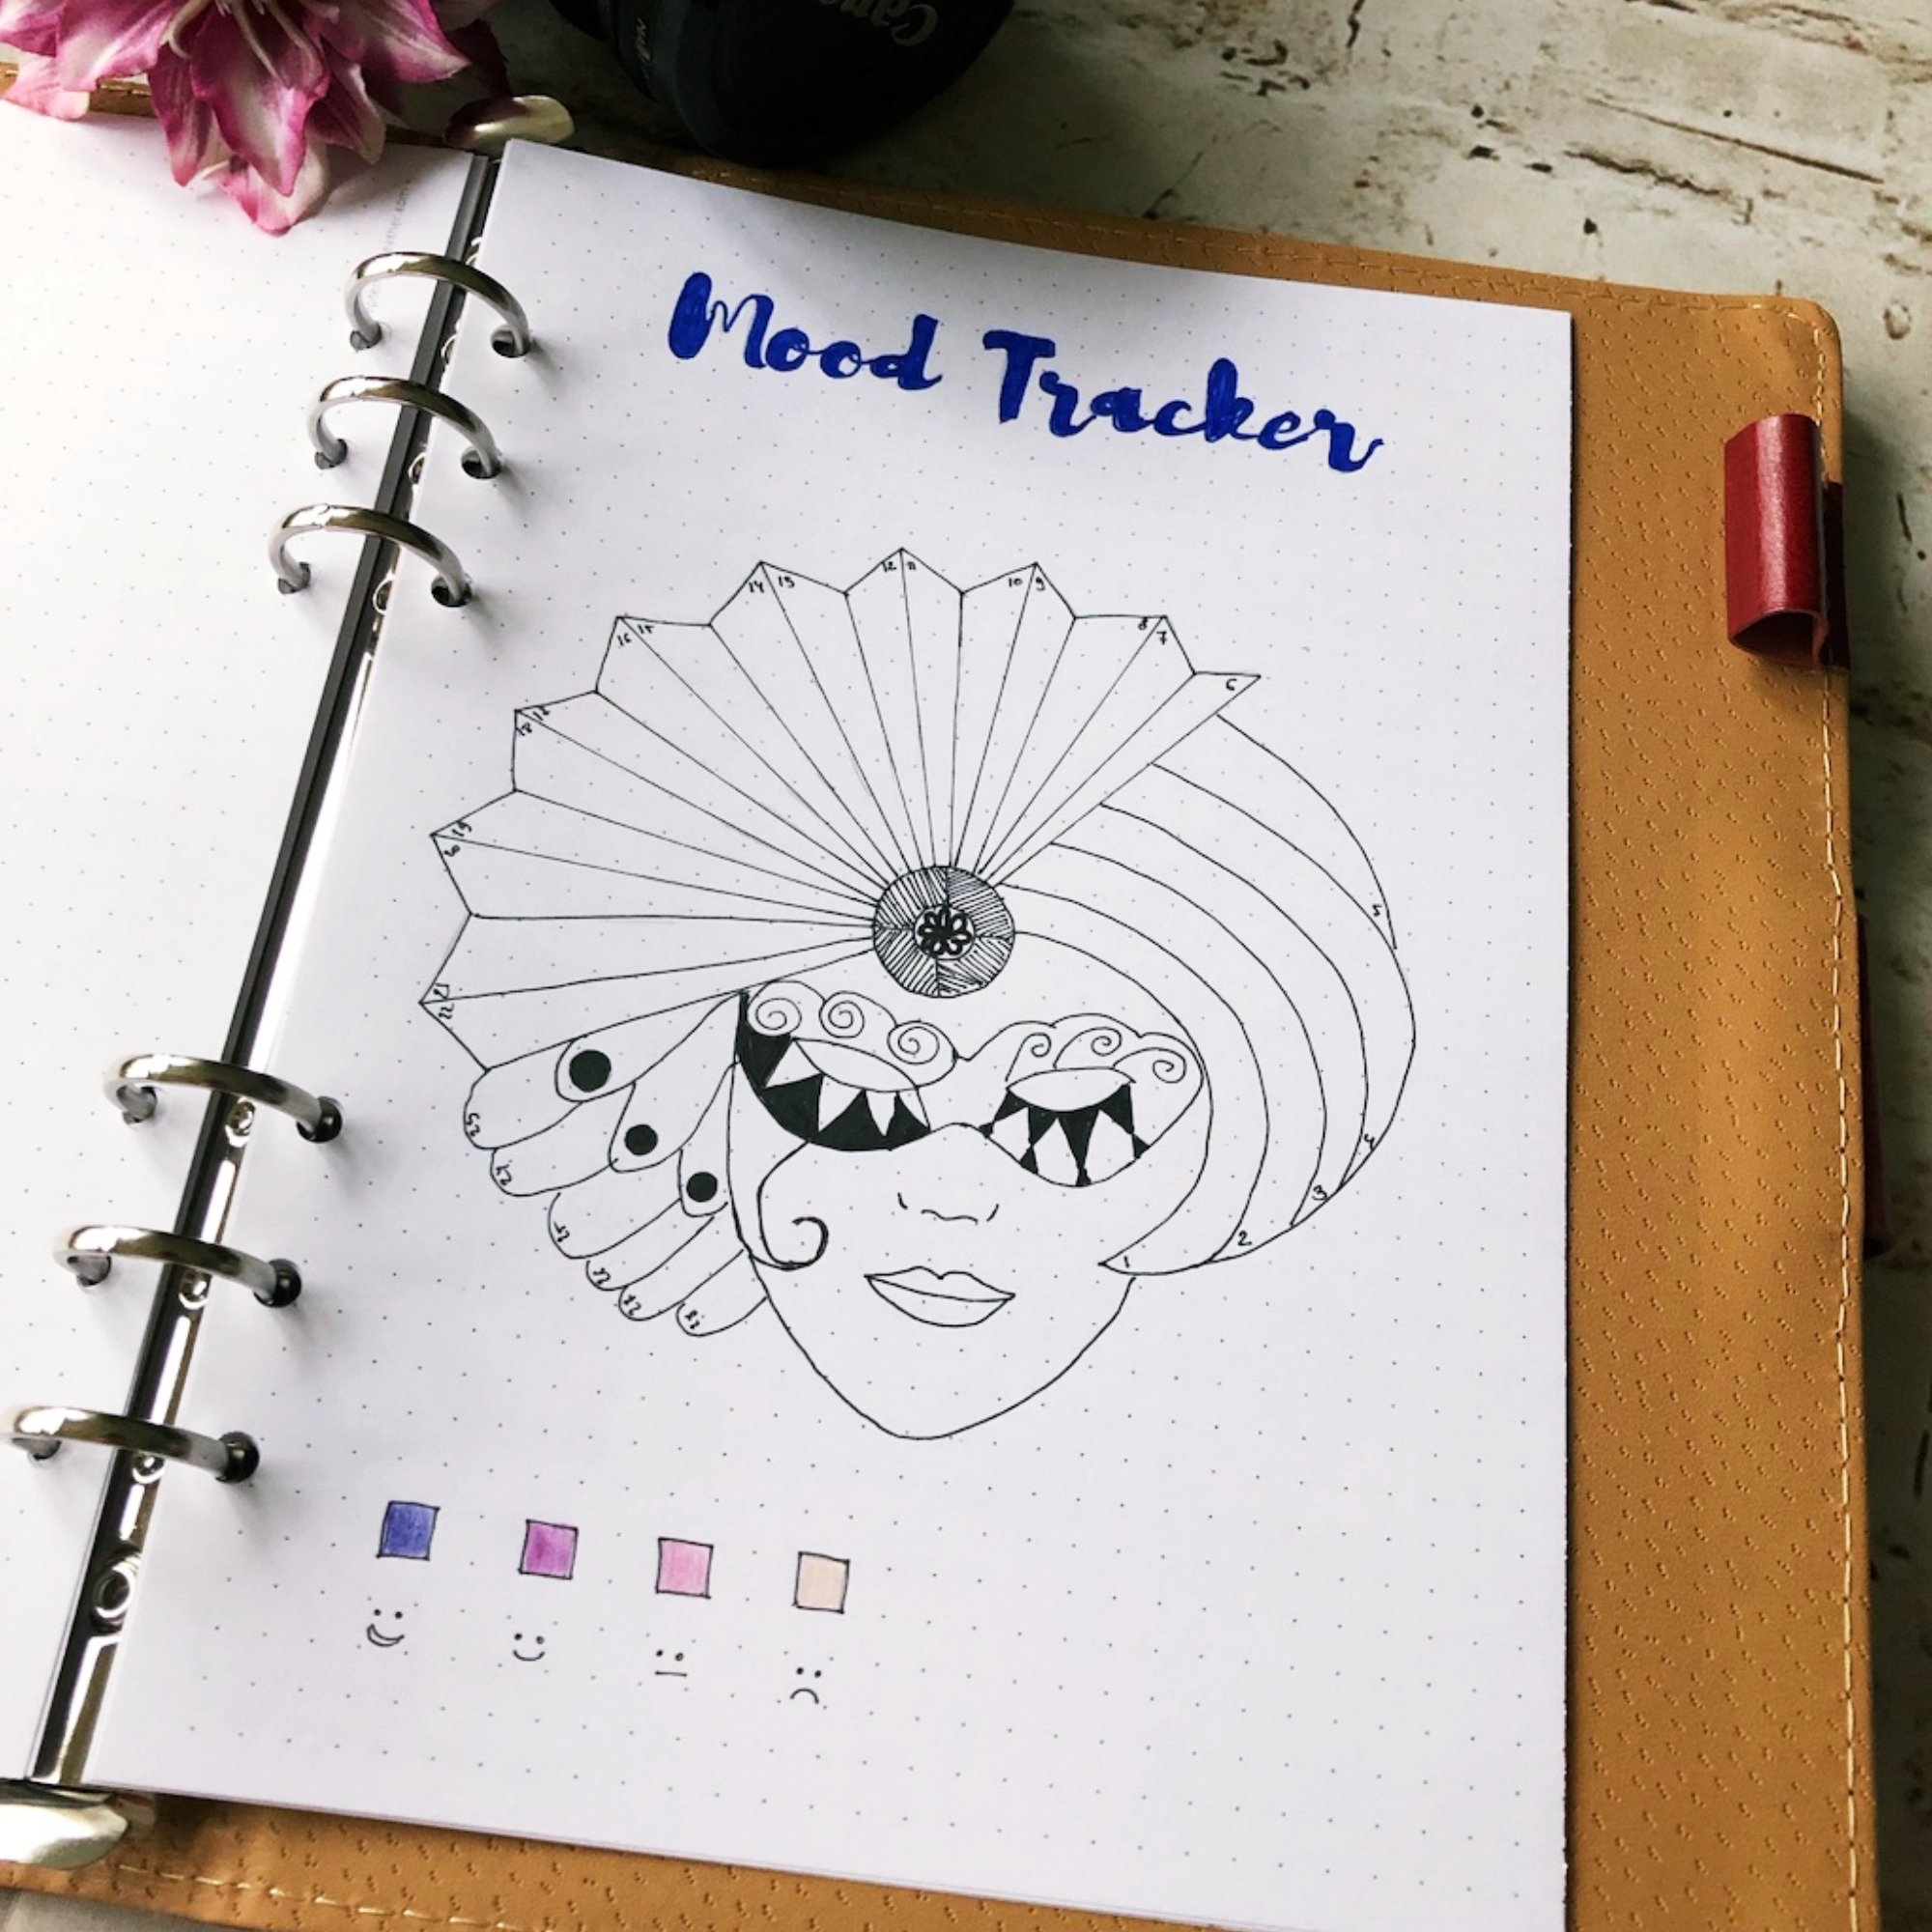 Creative journaling mood tracker February 2019 - itstartswithacoffee.com #creativejournaling #bulletjournaling #February #2019 #moodtracker #tracker